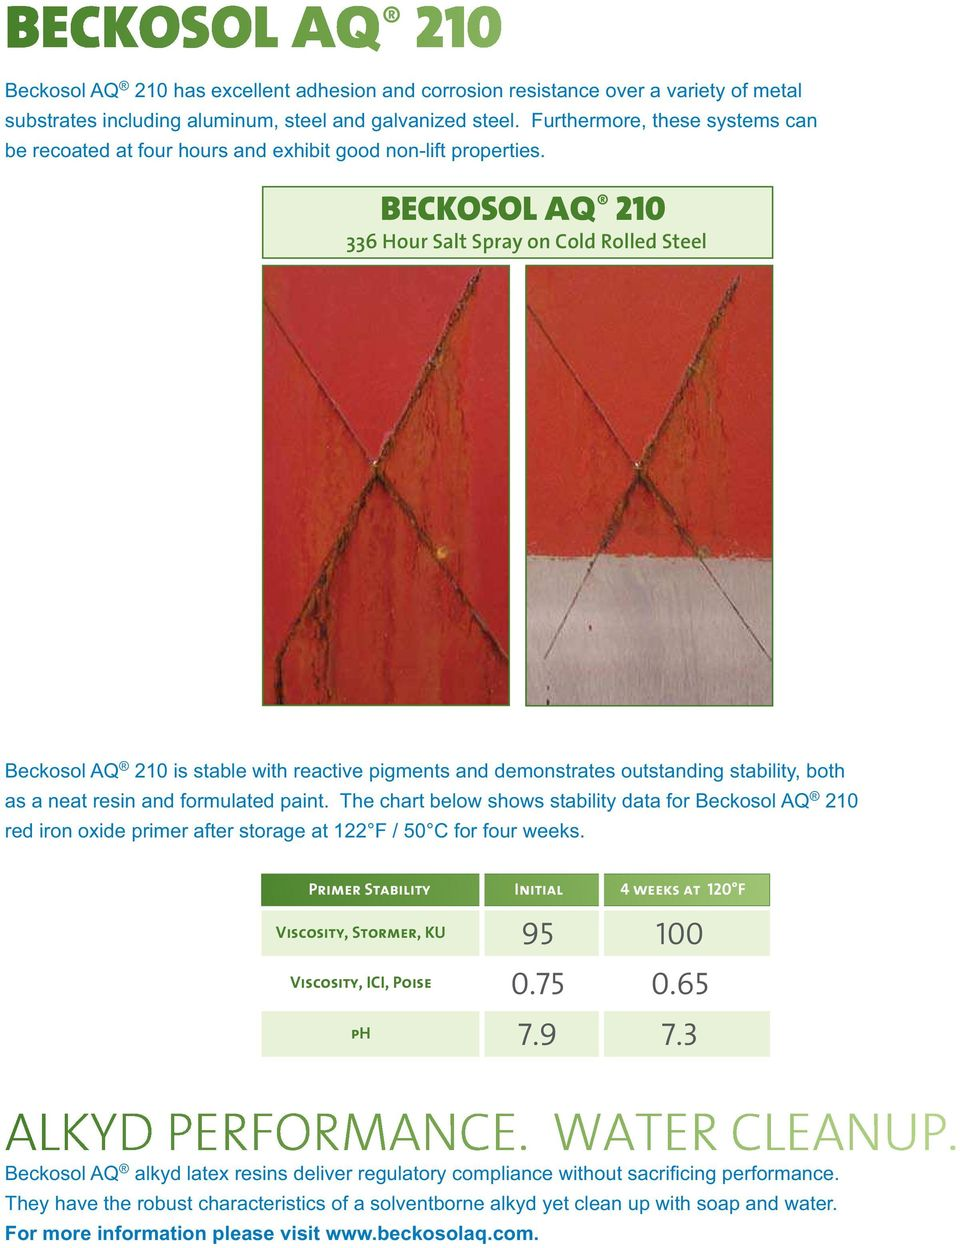 BECKOSOL AQ 210 336 Hour Salt Spray on Cold Rolled Steel Beckosol AQ 210 is stable with reactive pigments and demonstrates outstanding stability, both as a neat resin and formulated paint.